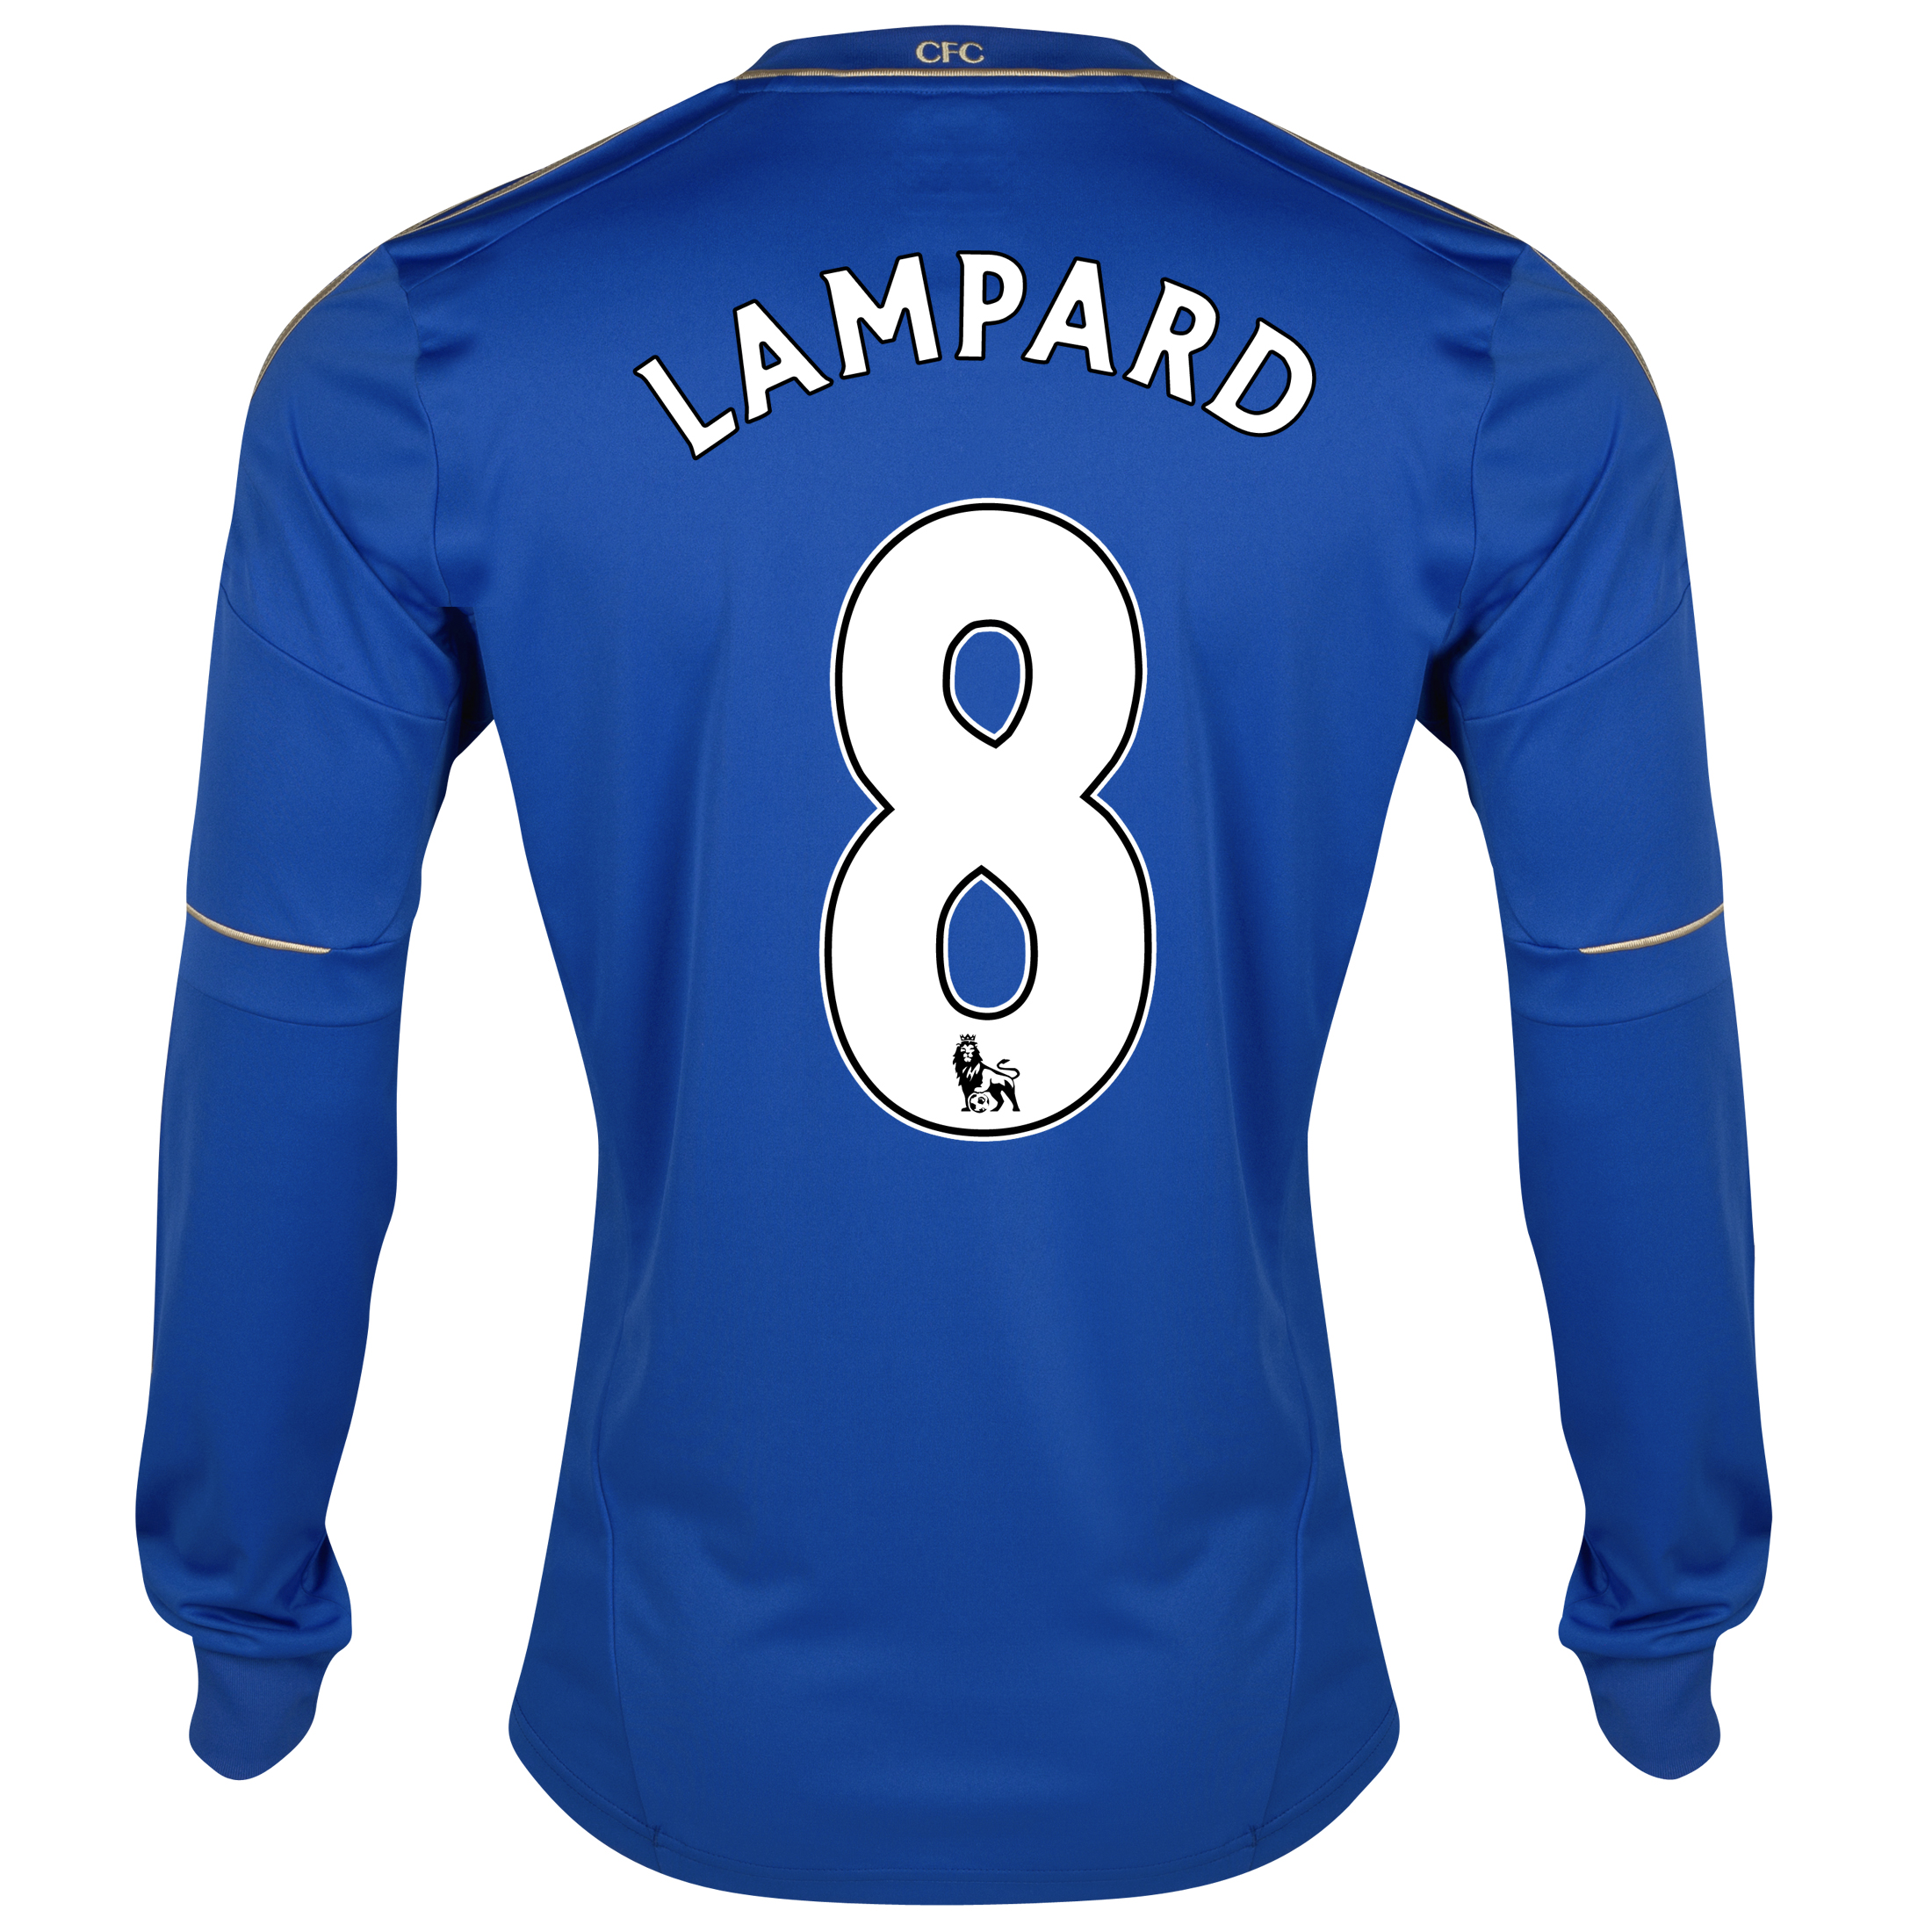 Chelsea Home Shirt 2012/13 - Long Sleeved - Youths with Lampard 8 printing